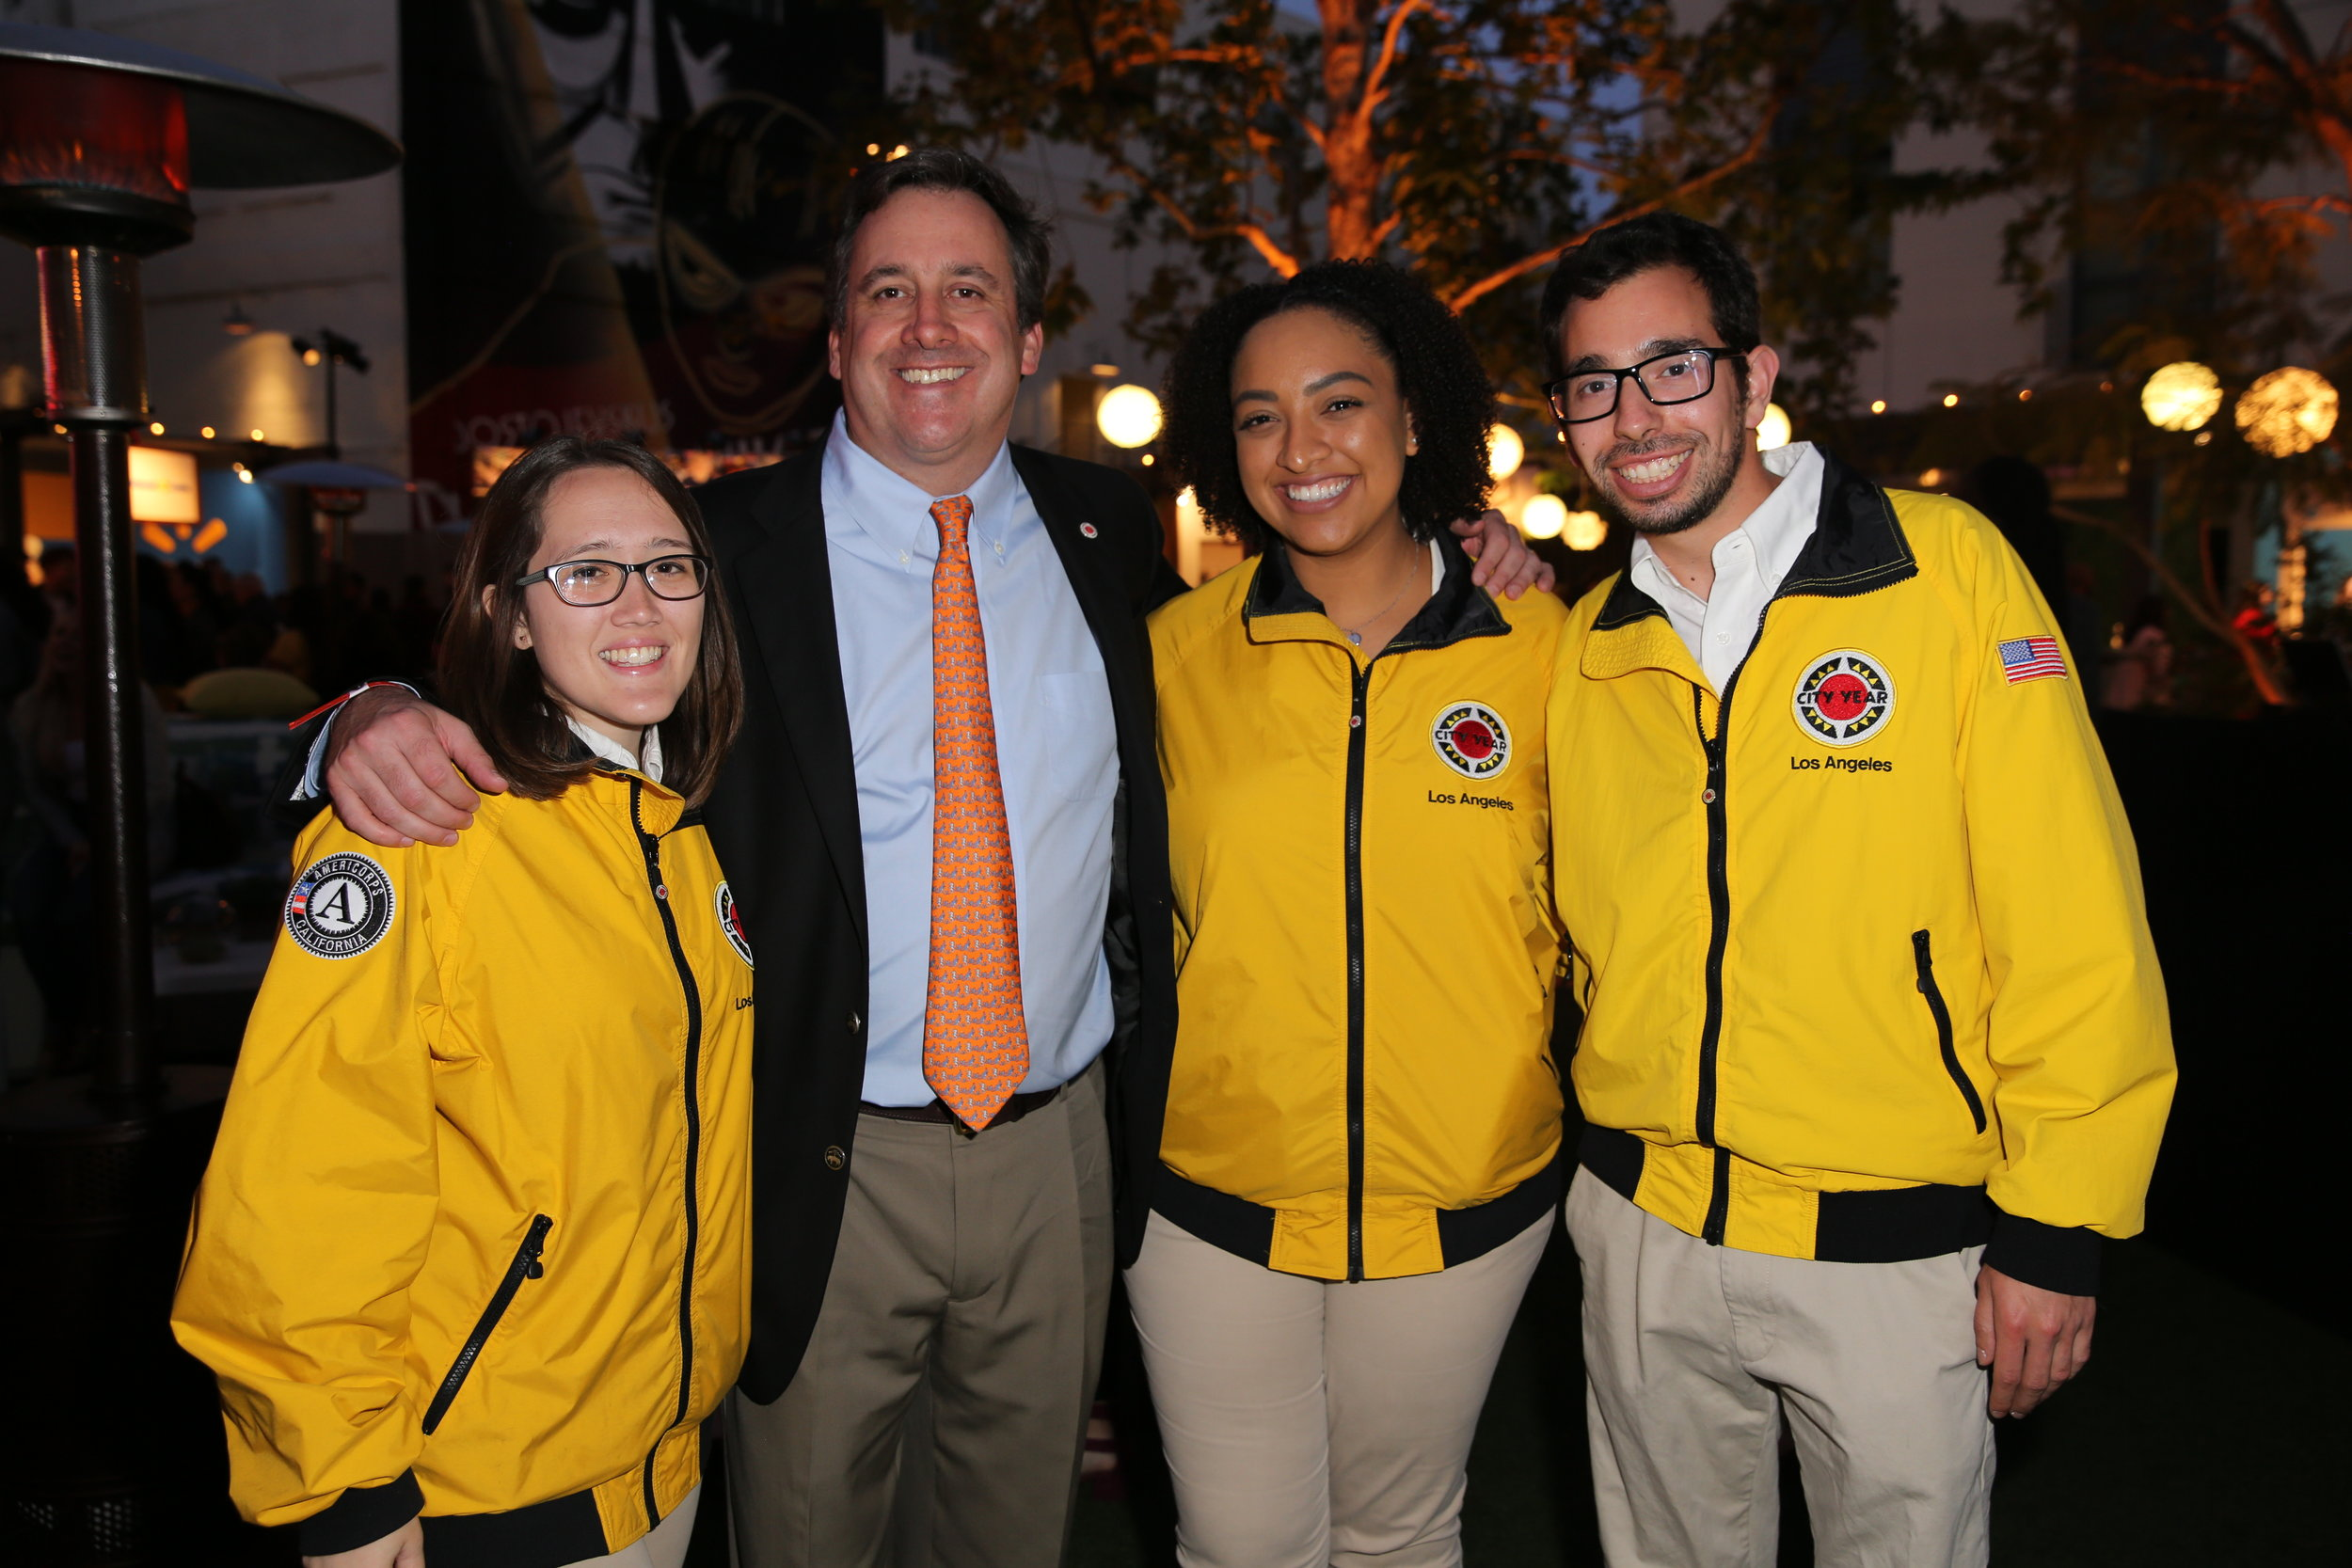 Jon Neuhaus, CYLA RJS Chair, joins AmeriCorps members from his Platinum sponsored team at Edwin Markham Middle School and the Civic Engagement Team